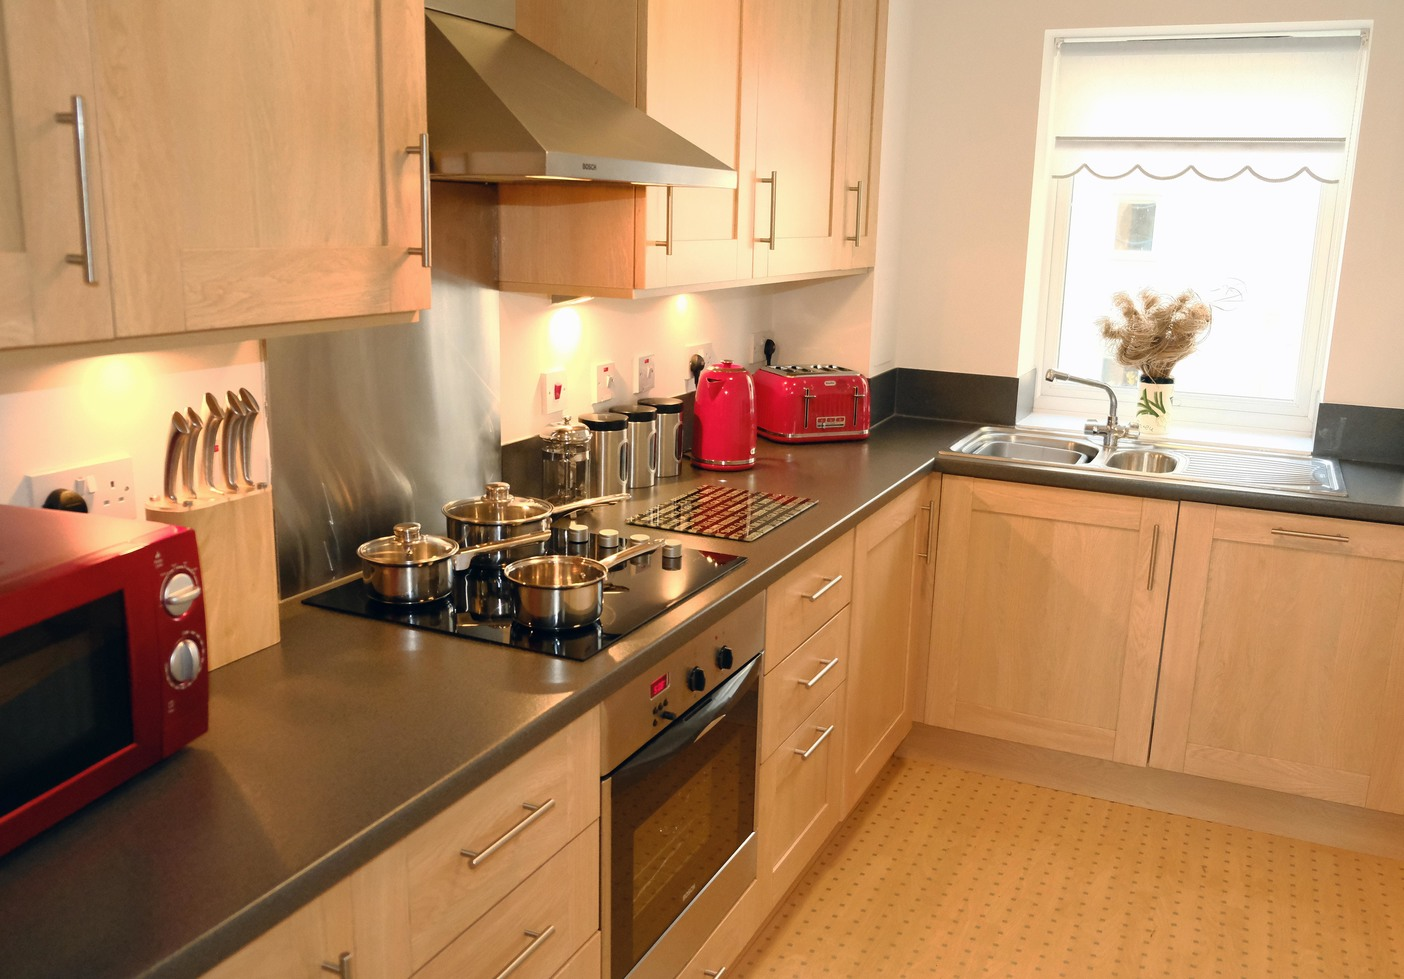 Kitchen at Knightsbridge Court Apartments